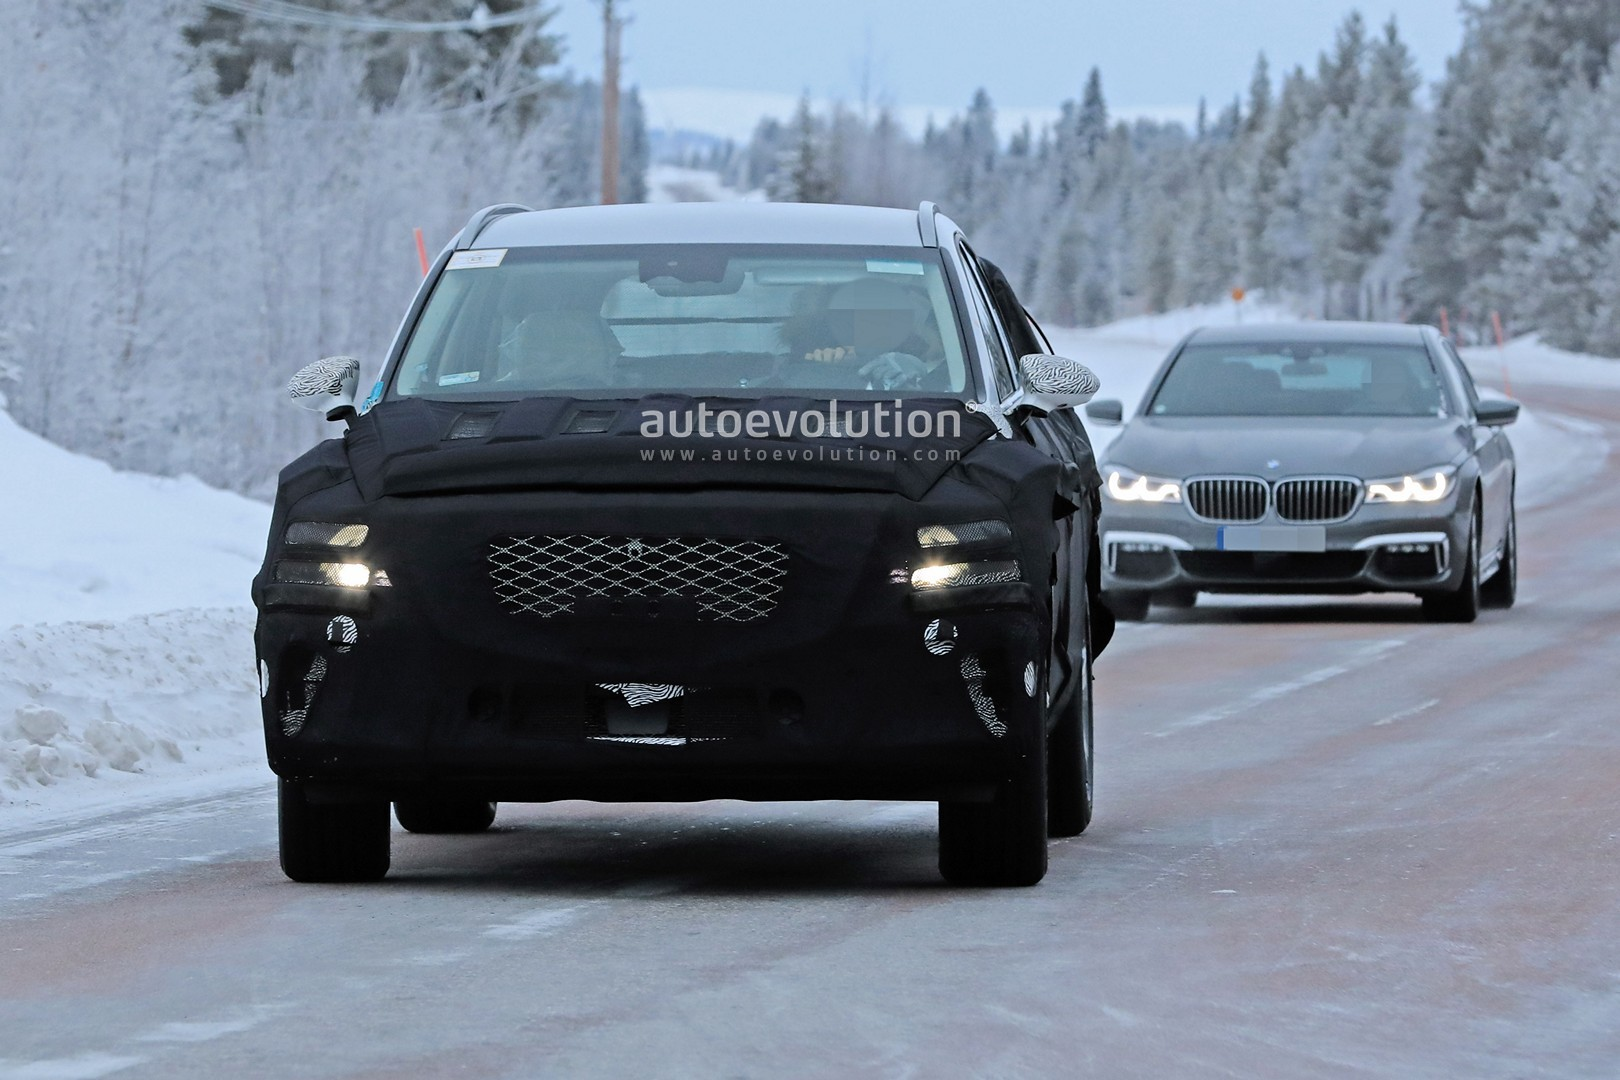 2019 - [Genesis] SUV GV80 - Page 2 Genesis-gv80-suv-prototype-makes-production-spyshots-debut_2